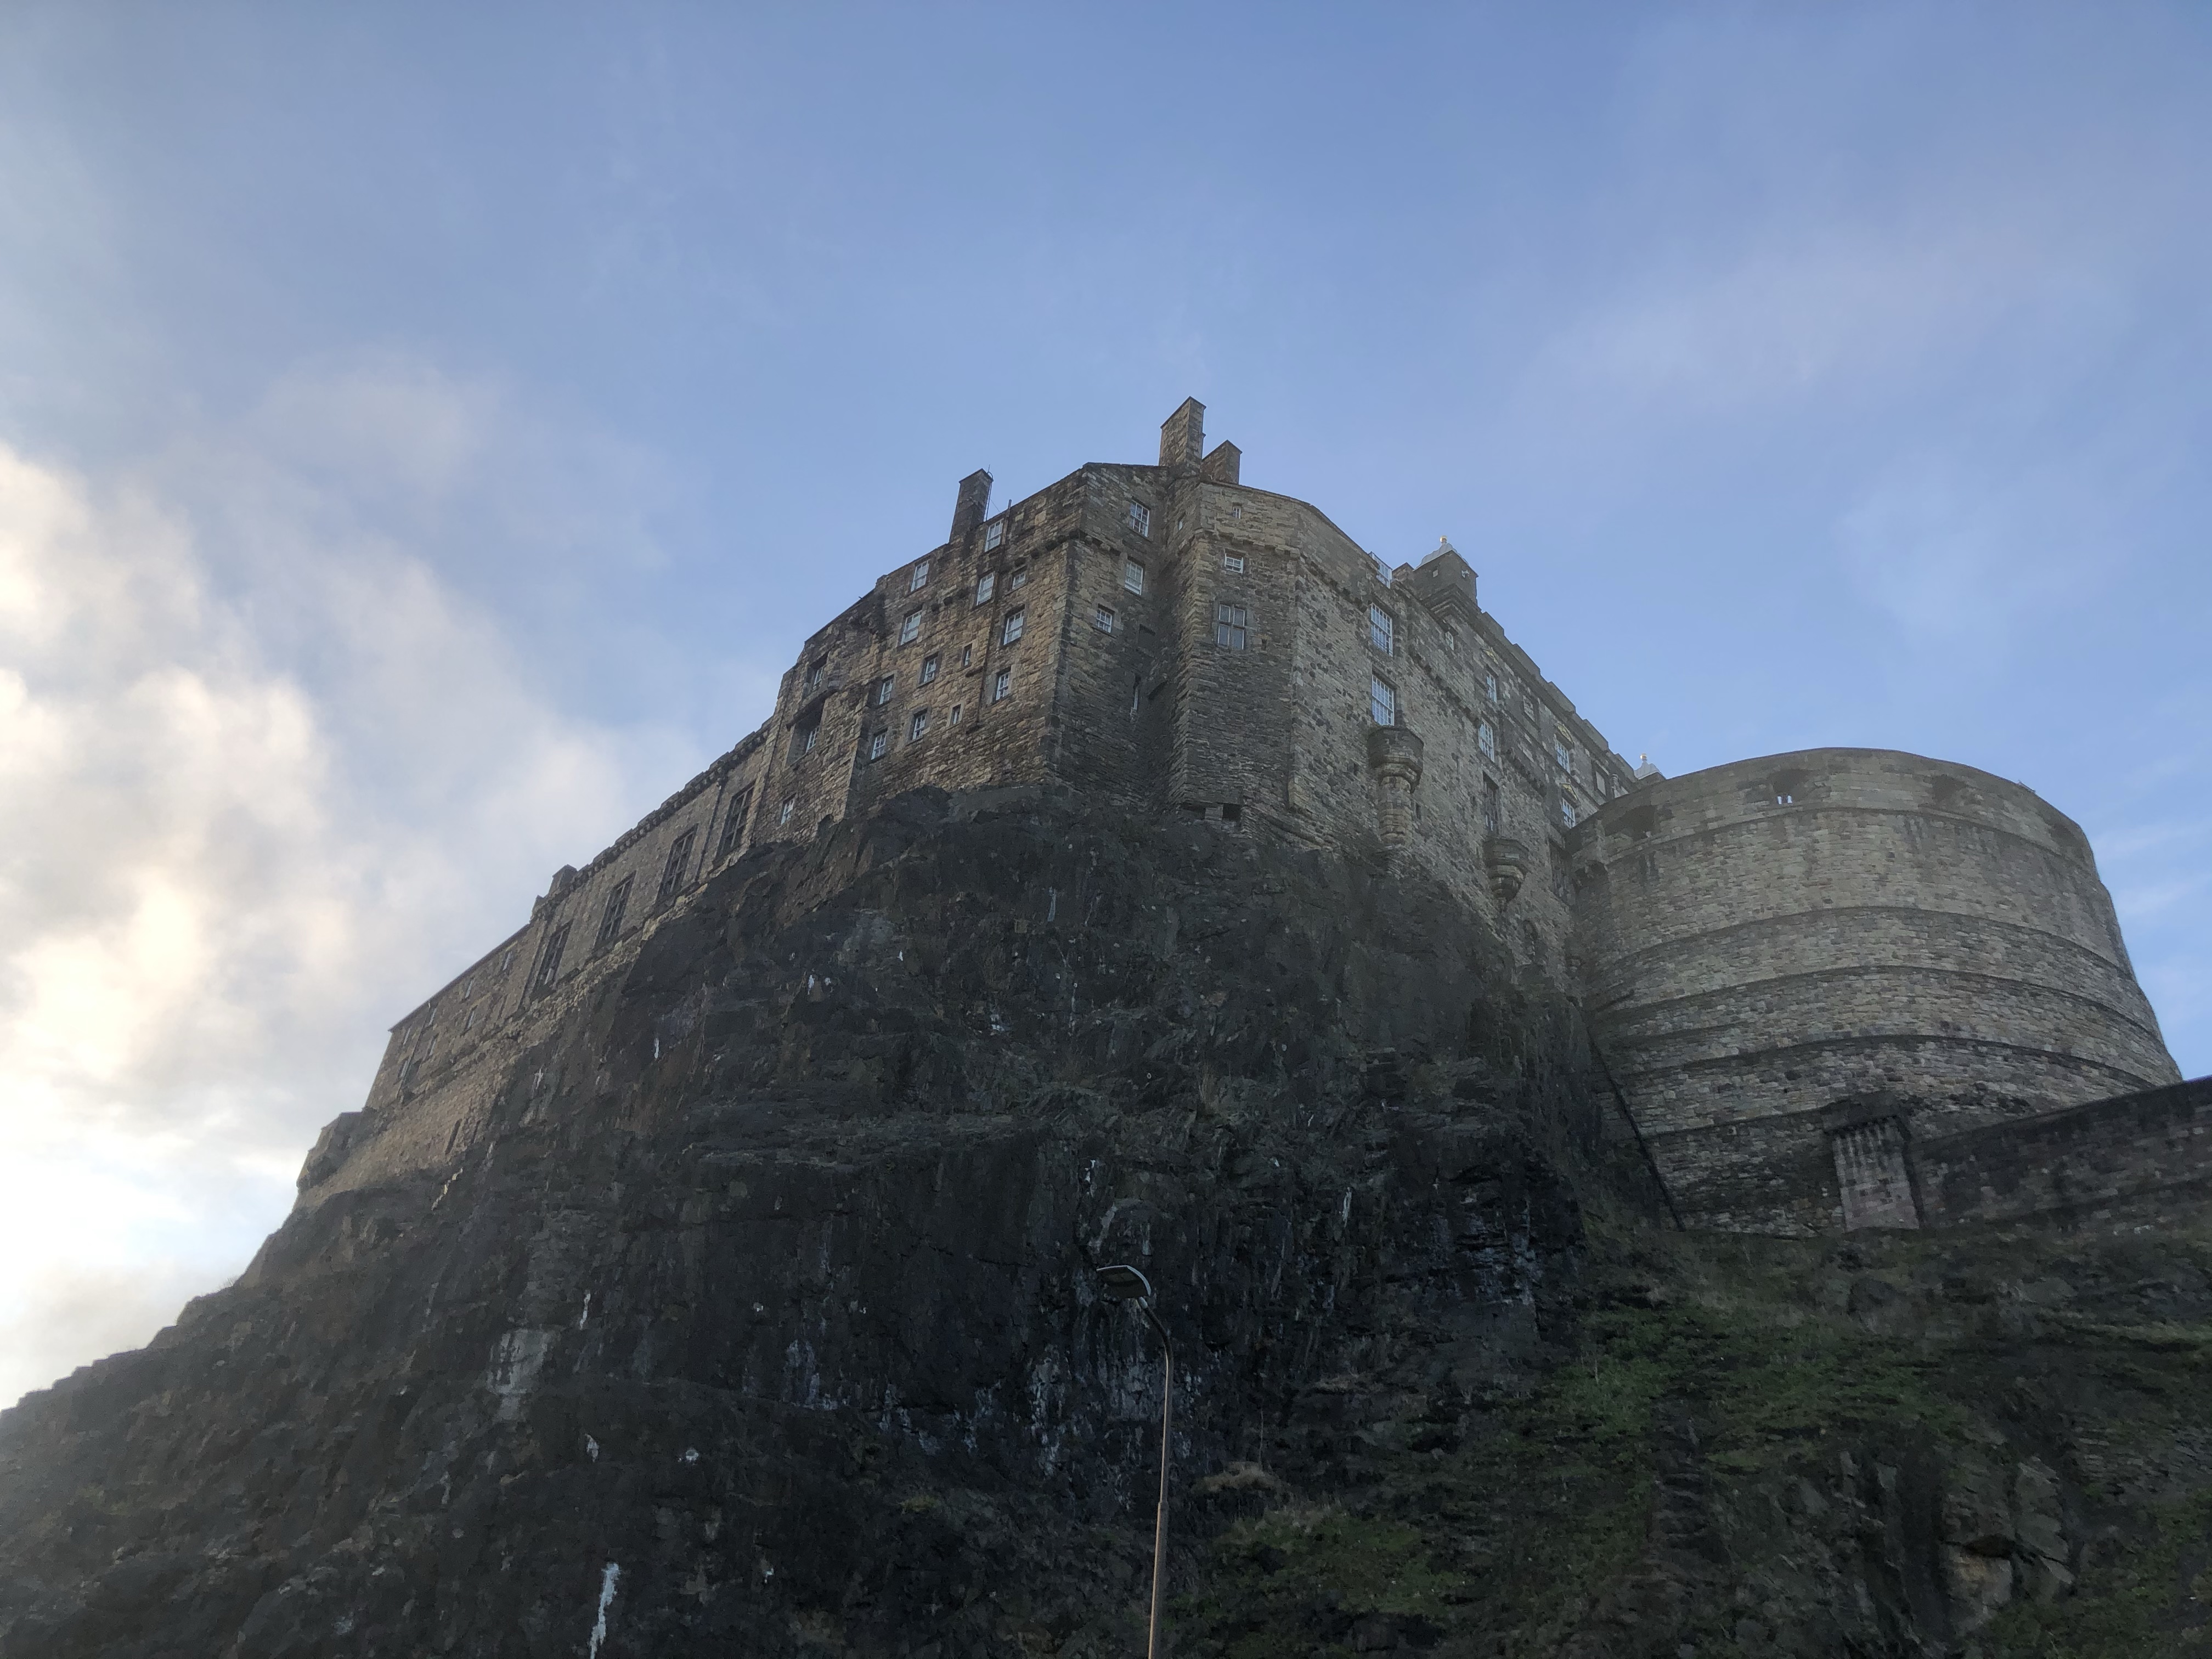 The Edinburgh castle from a low angle